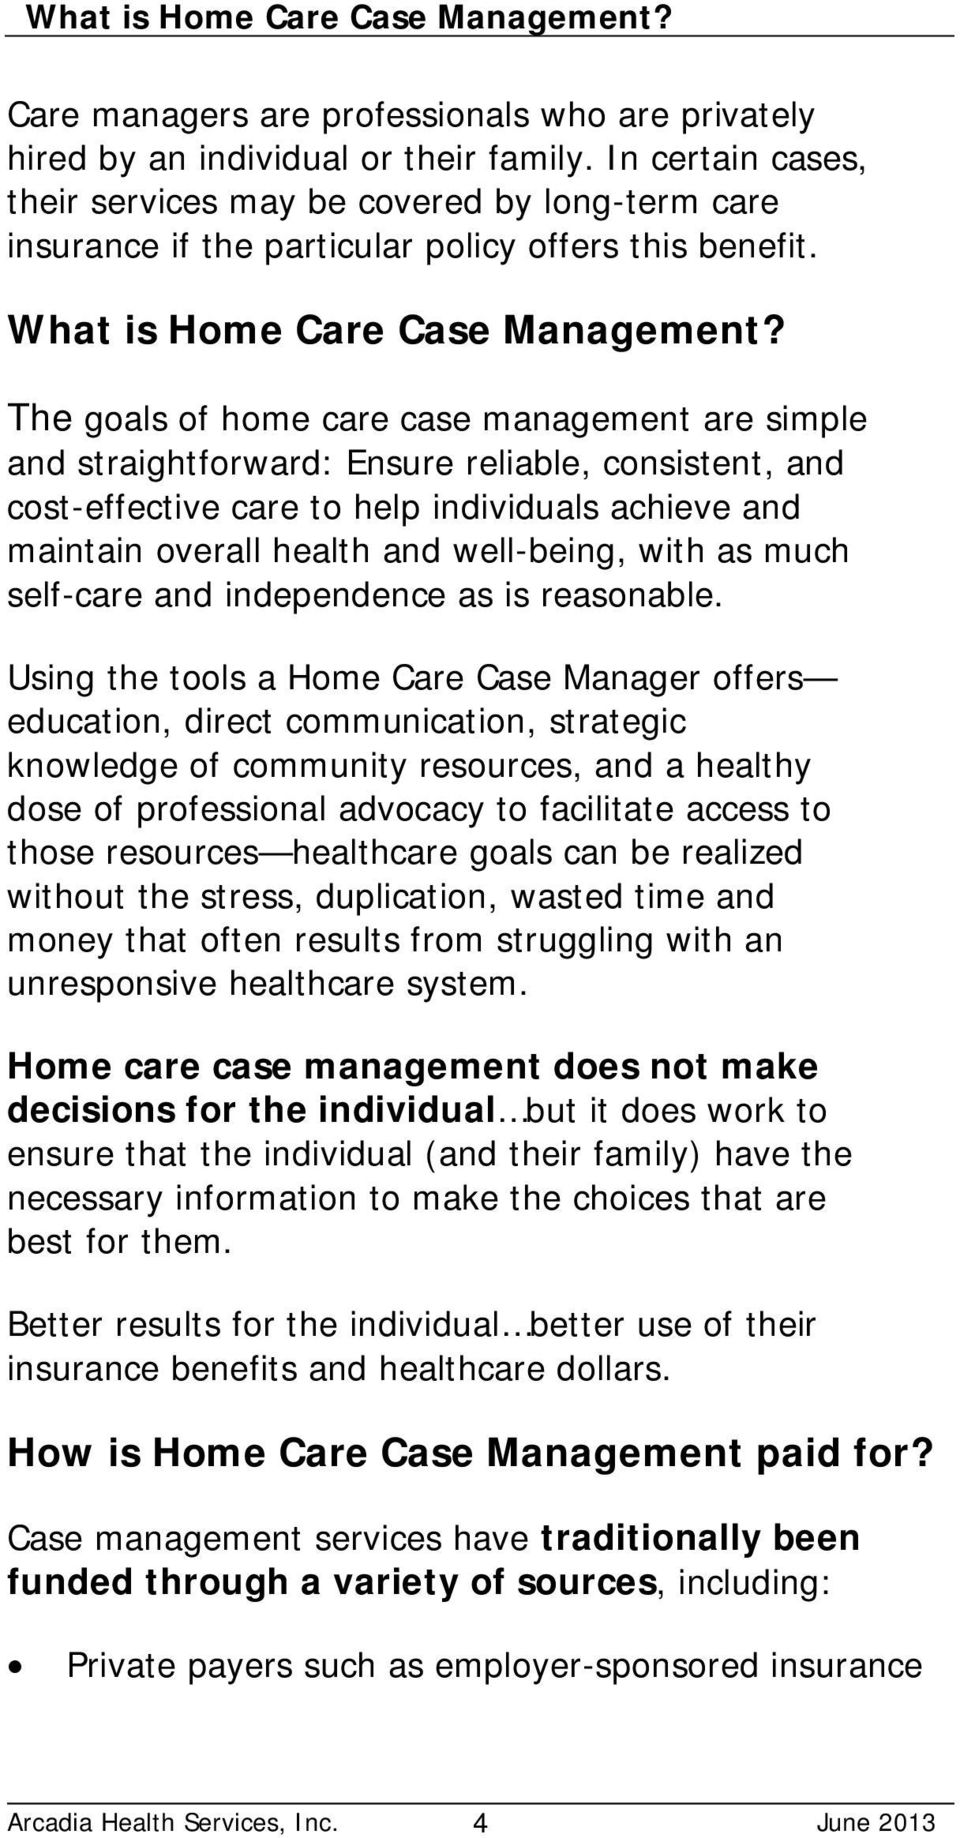 The goals of home care case management are simple and straightforward: Ensure reliable, consistent, and cost-effective care to help individuals achieve and maintain overall health and well-being,